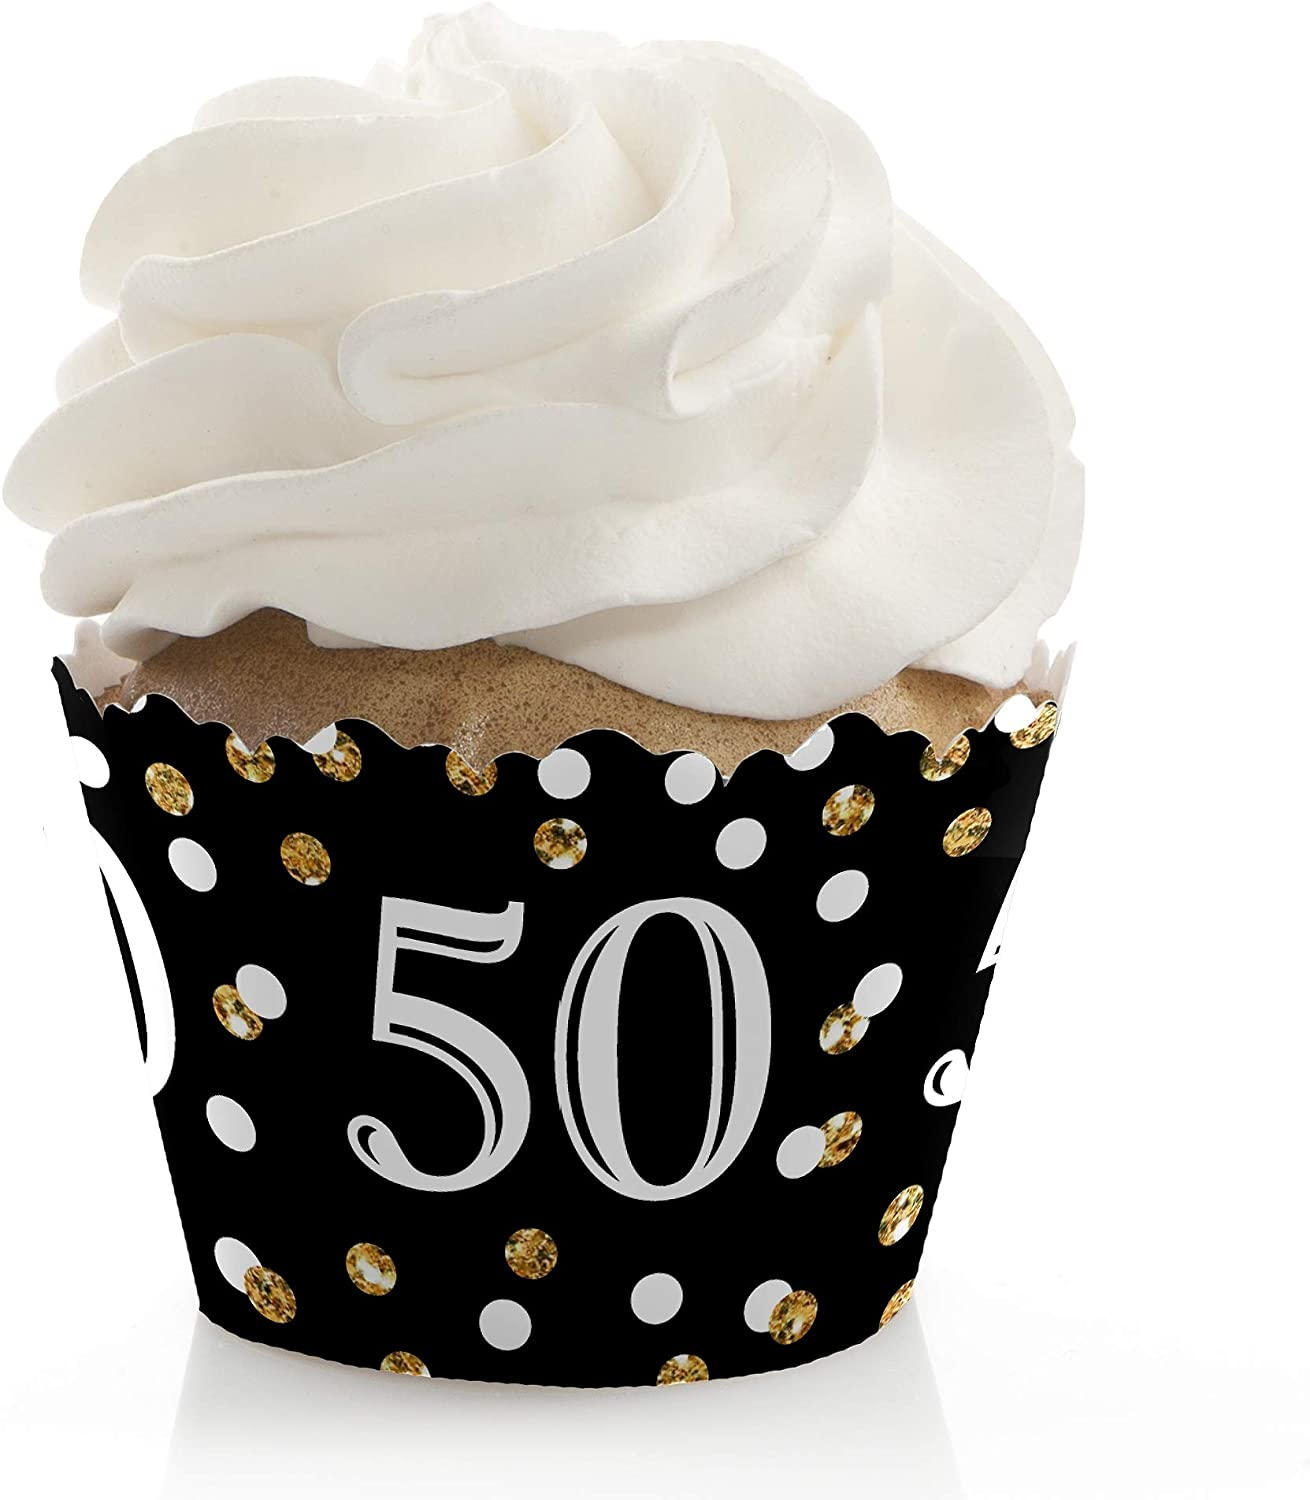 Adult 50th Birthday - Gold - Birthday Party Decorations - Party Cupcake Wrappers - Set of 12